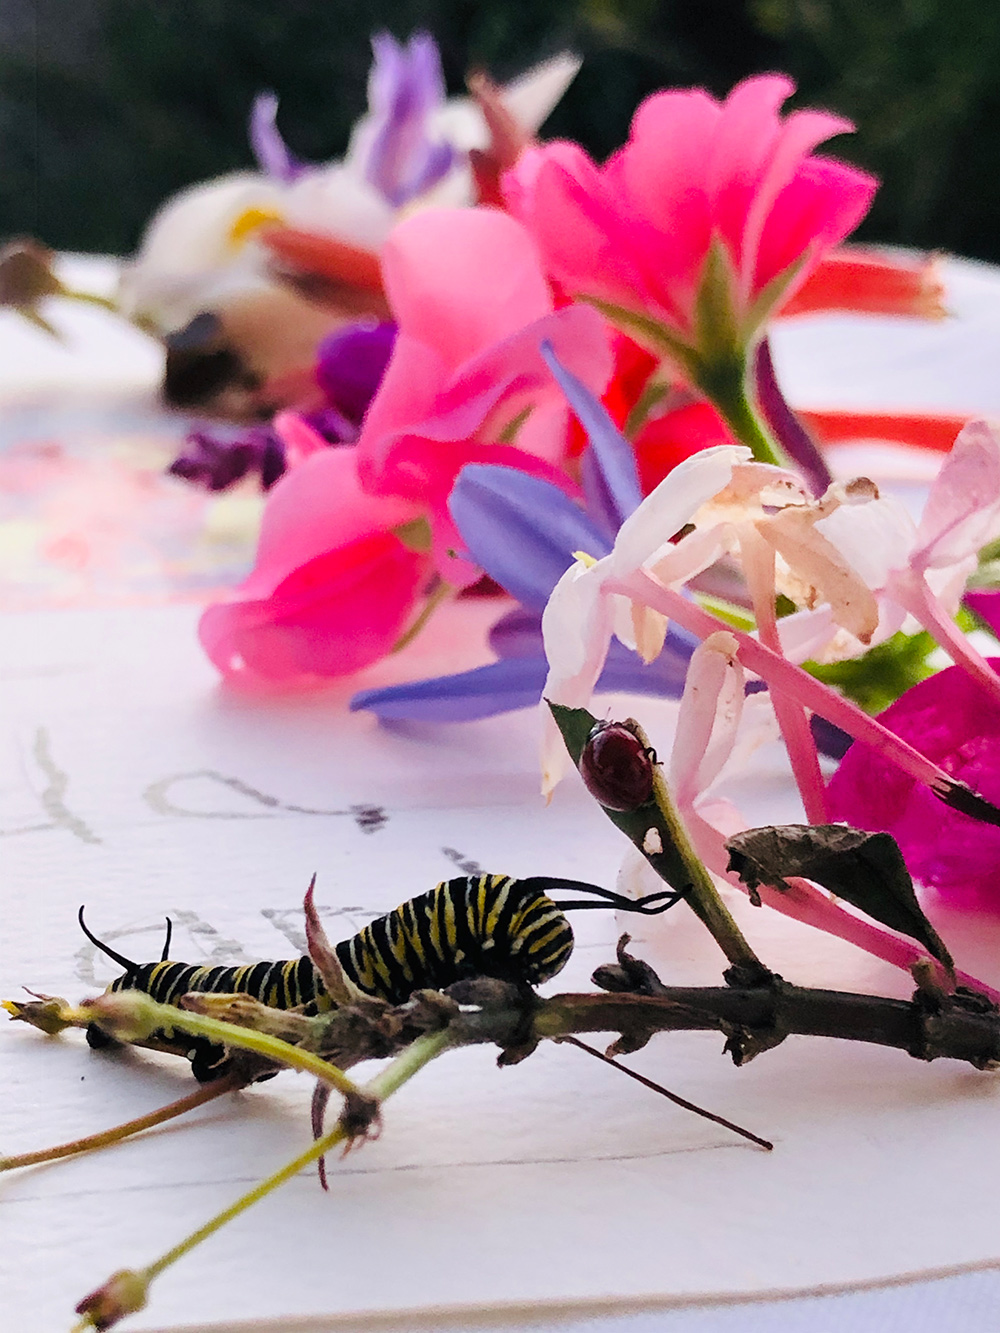 Black and yellow striped caterpillar on a branch with pinks flowers, resting on white paper